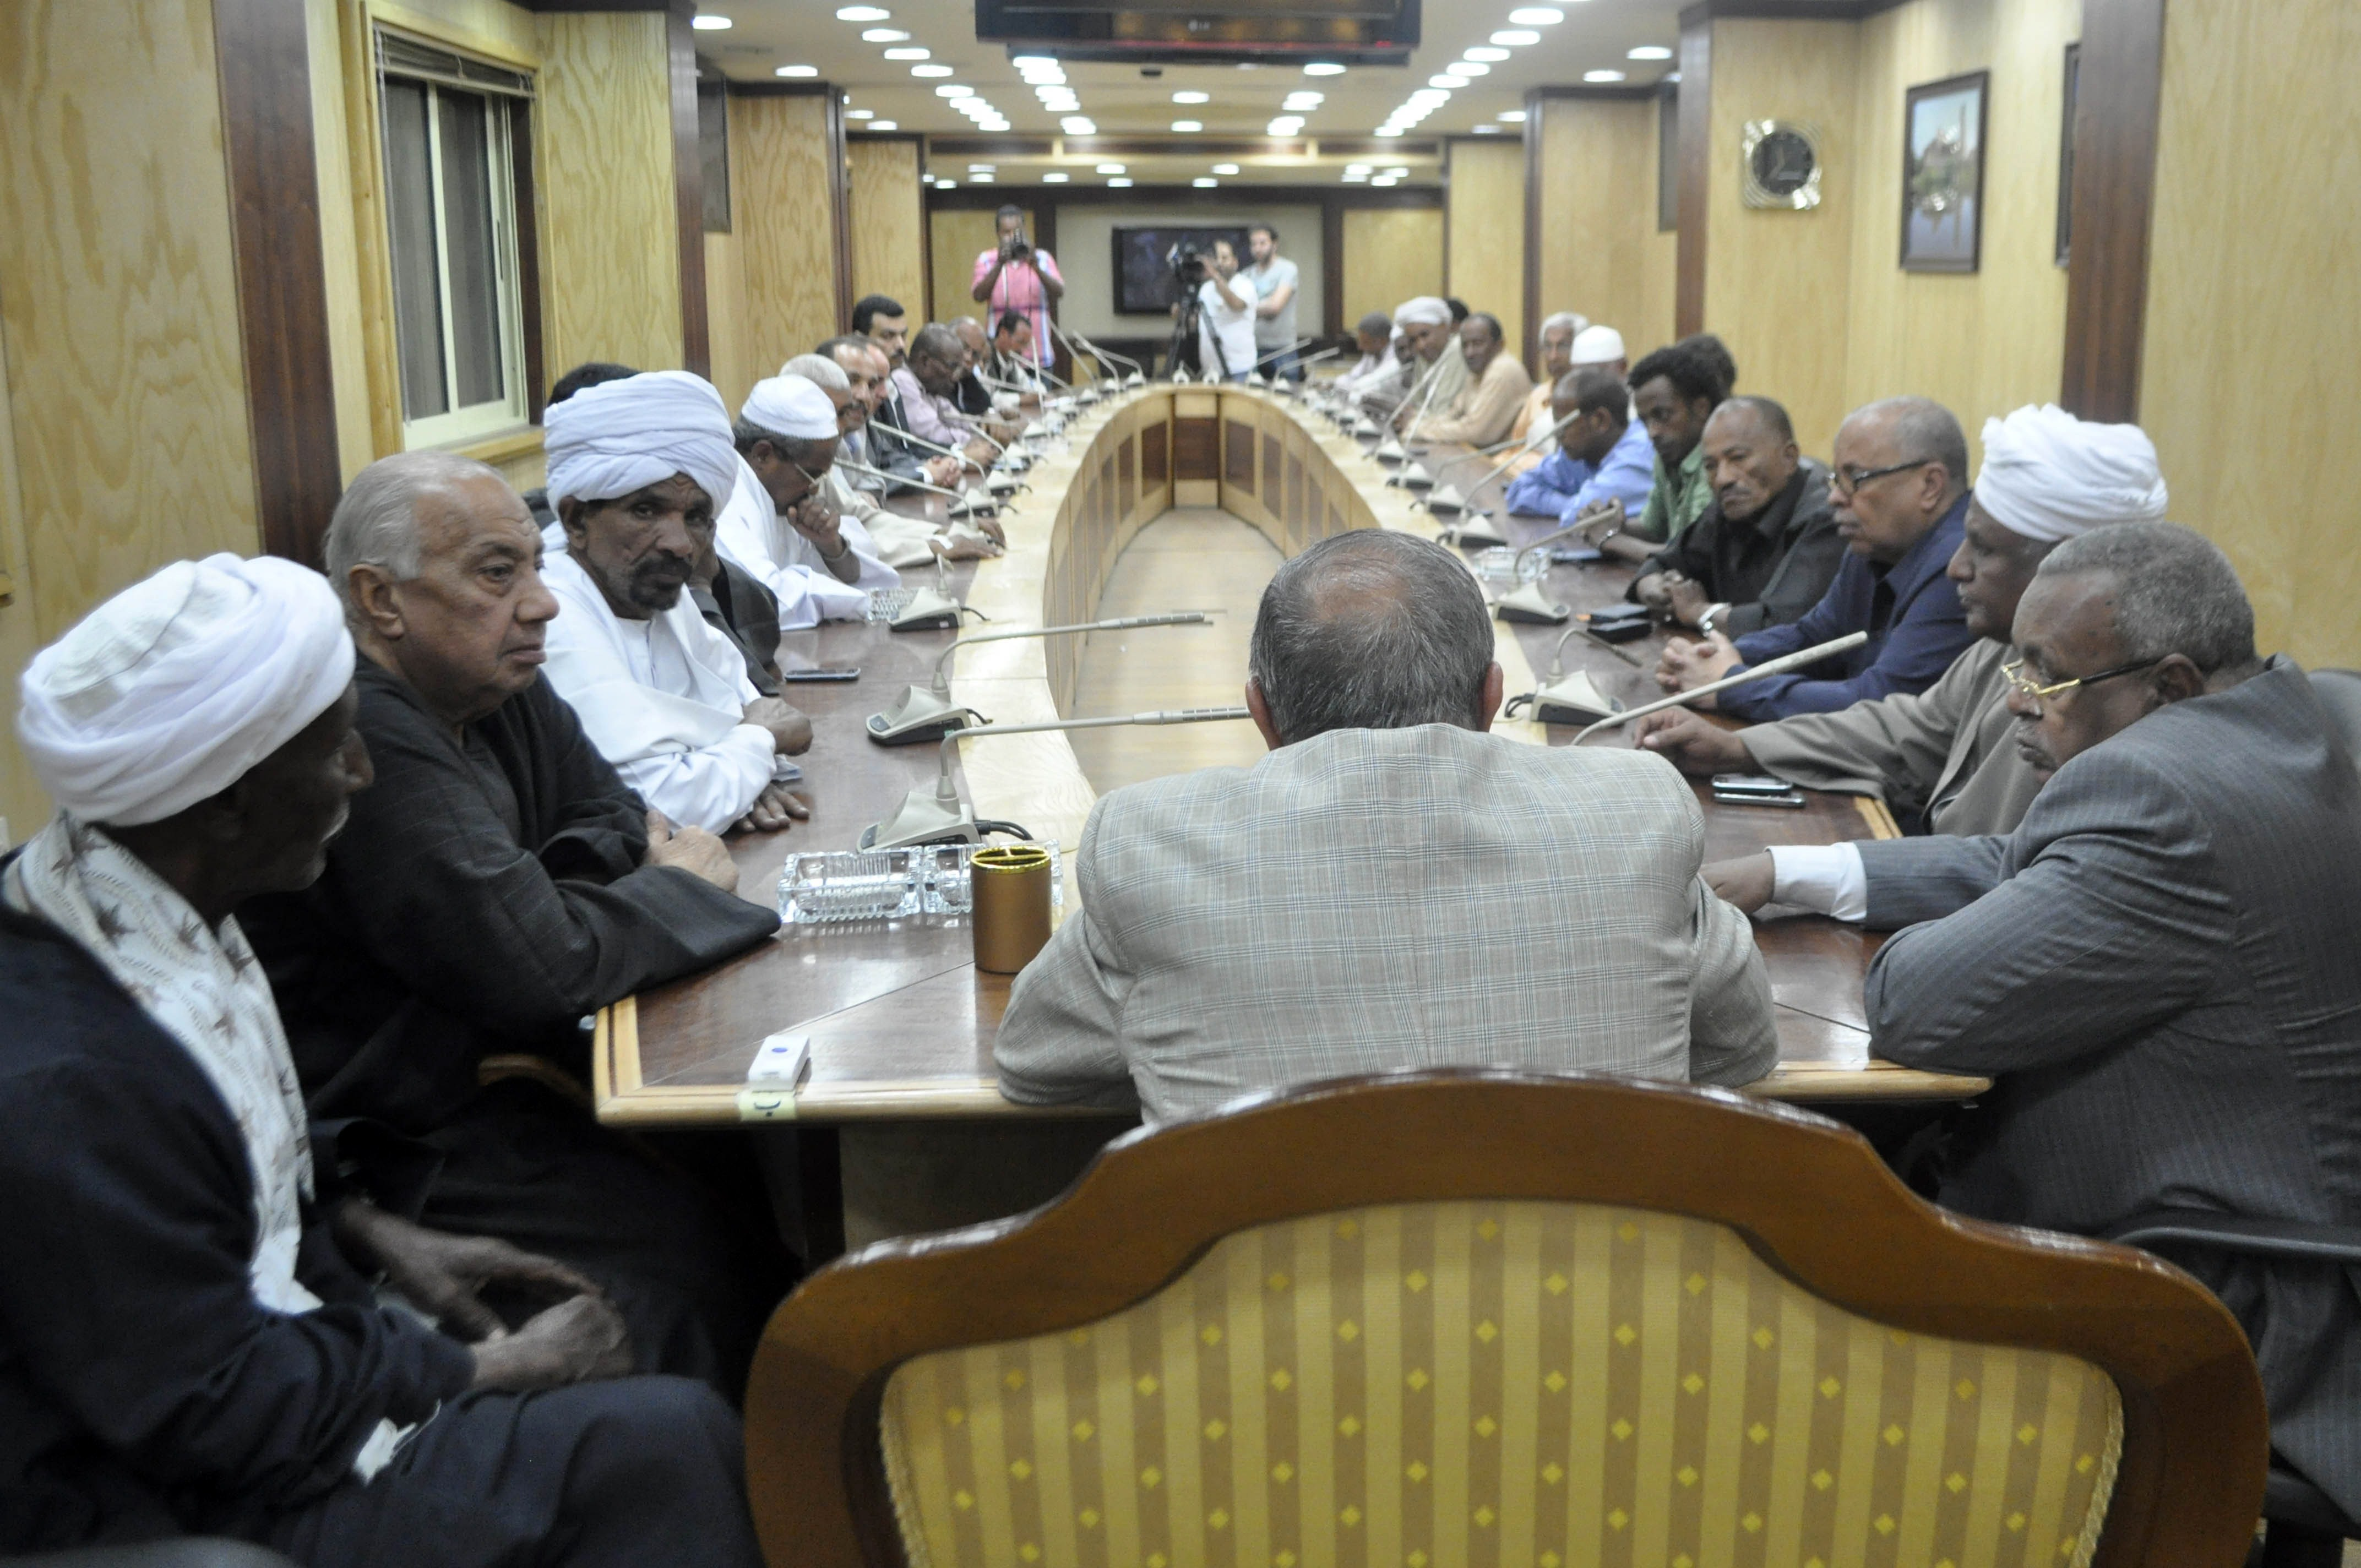 Egyptian Governor of the southern city of Aswan, Mostafa Yousry Attalah (C) leads a meeting gathering officials and representatives of the Bani Hilal, an Arab tribe, and the Dabudiya, a Nubian family following fighting between the two groups on April 7, 2014 at Aswan's governorate headquarters. At least two people were killed in renewed tribal clashes, after 48 hours of violence that left 23 dead, security officials said.  (AFP PHOTO / RADWAN EL-NAJAR)